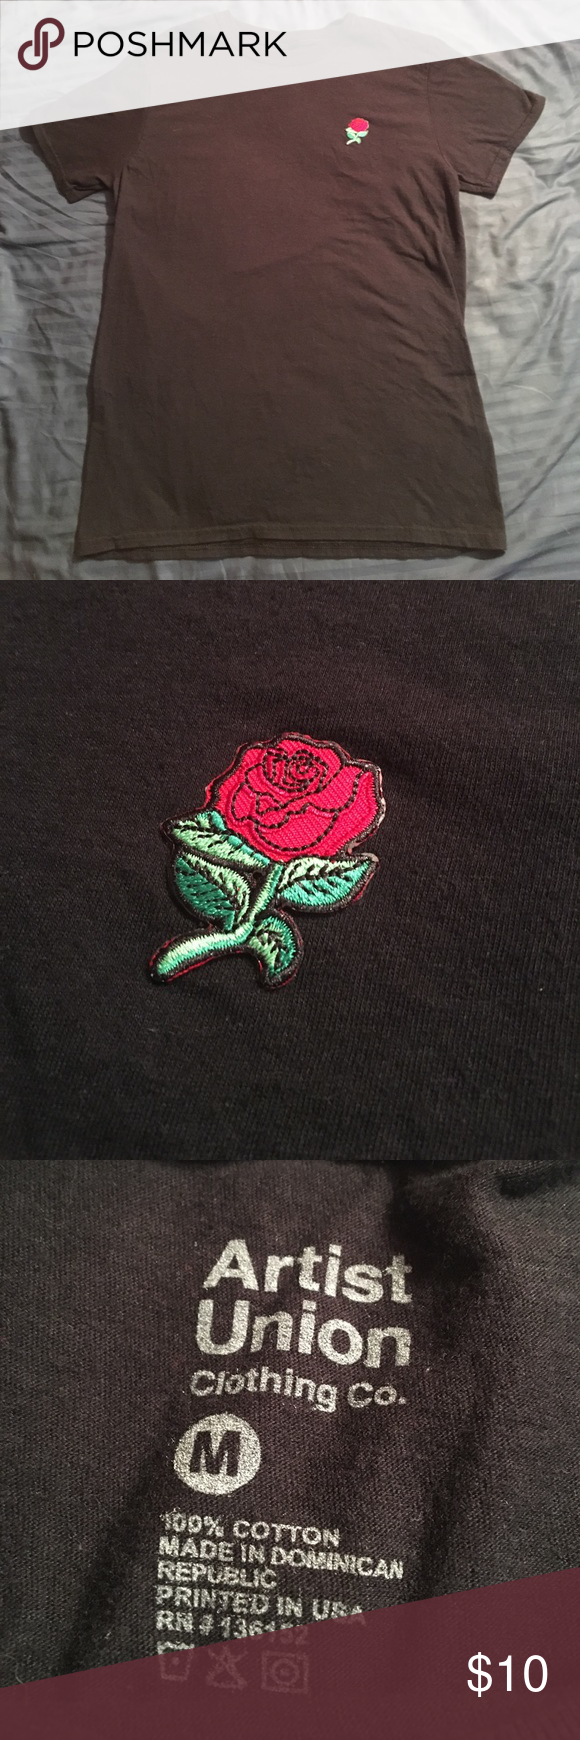 Artist Union Rose Shirt M Pre Owned But In Very Good Condition